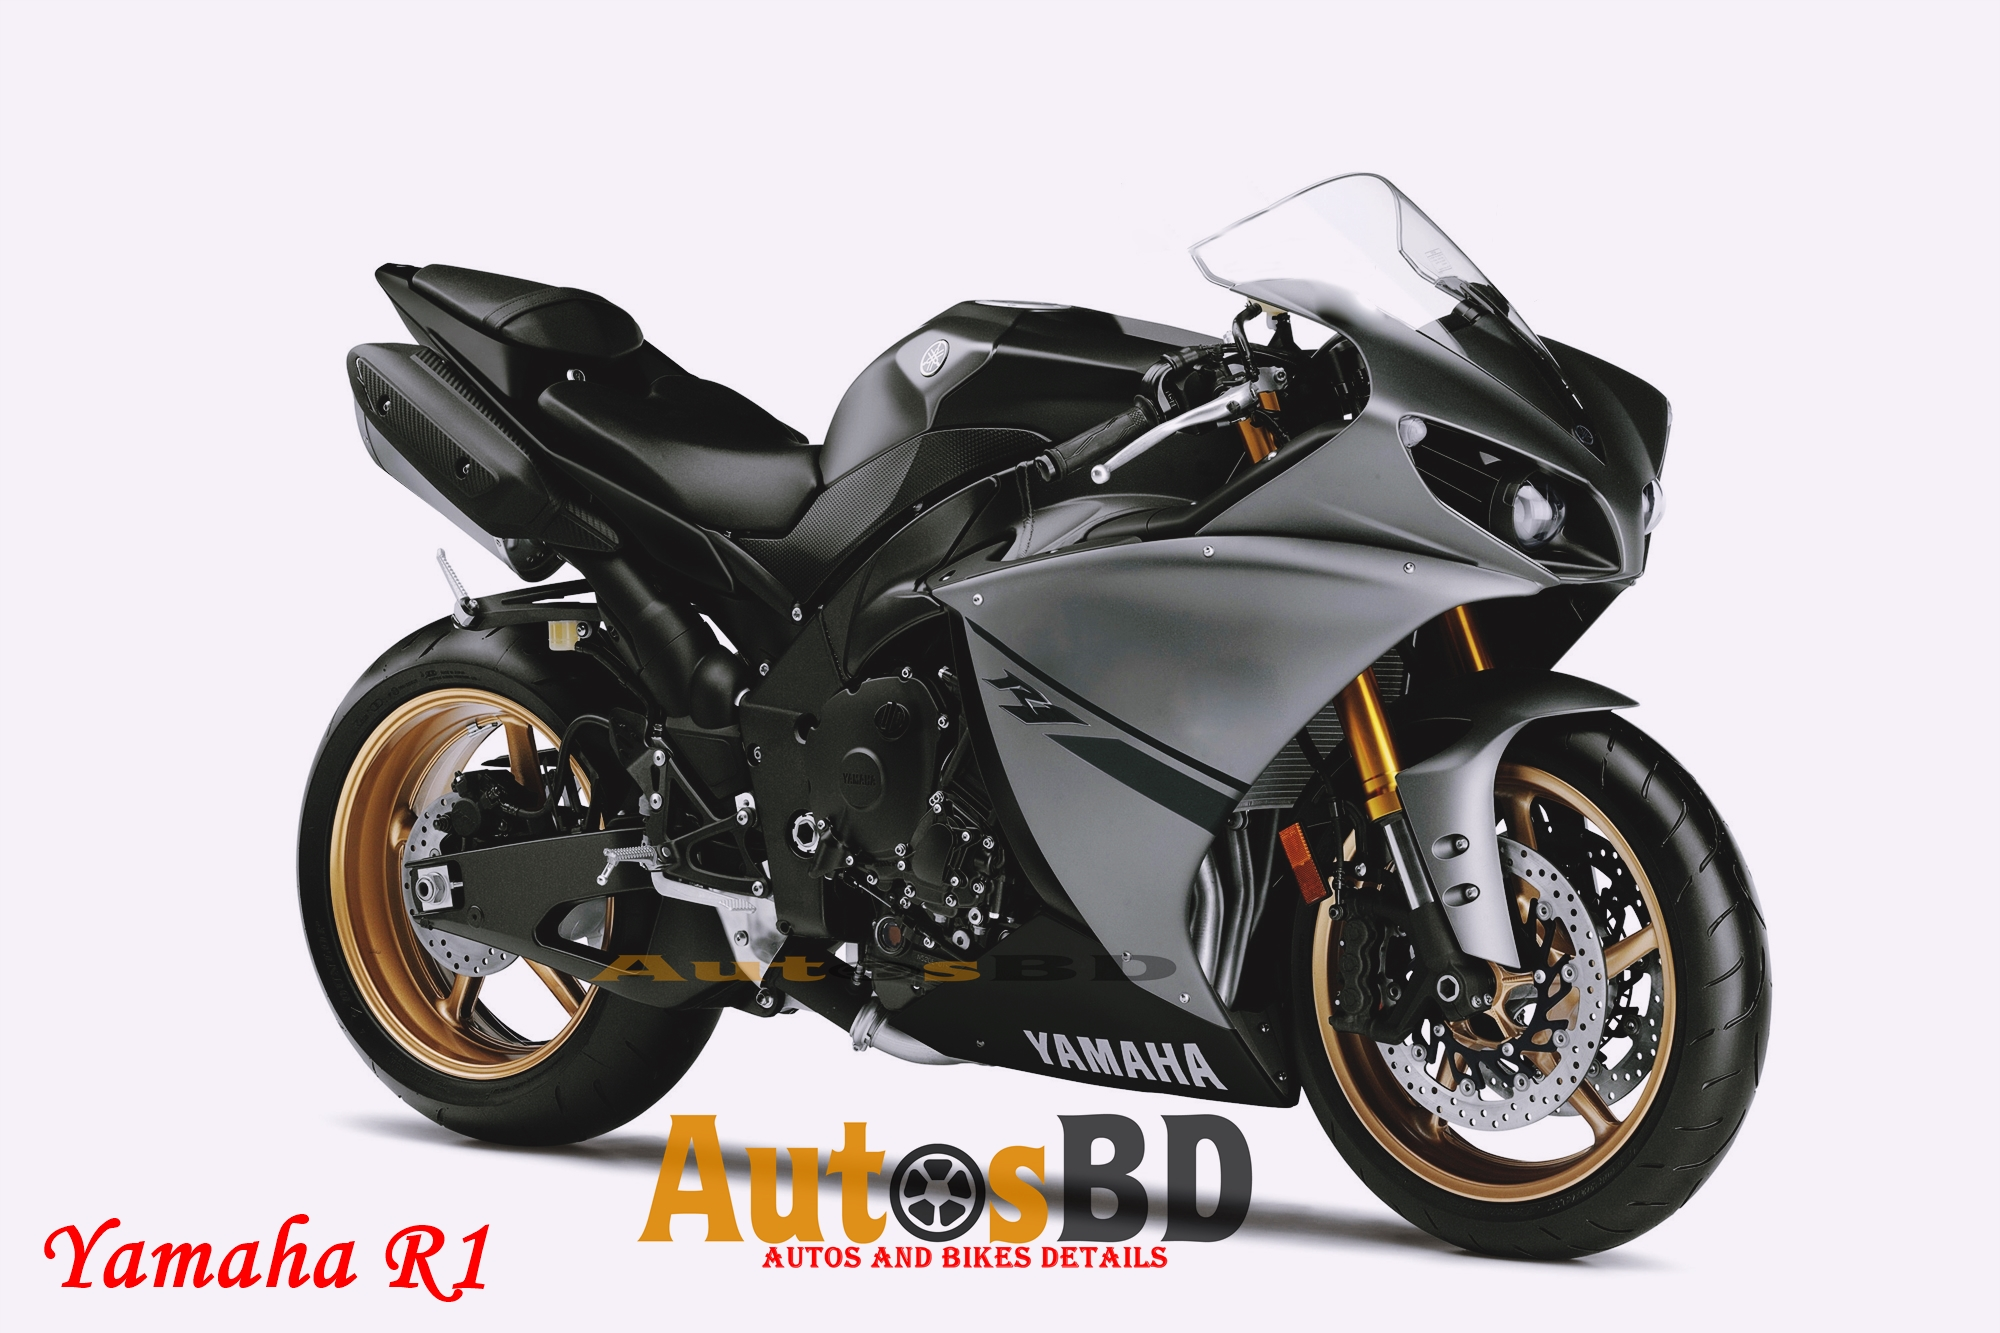 Yamaha R1 Motorcycle Archives Autosbd